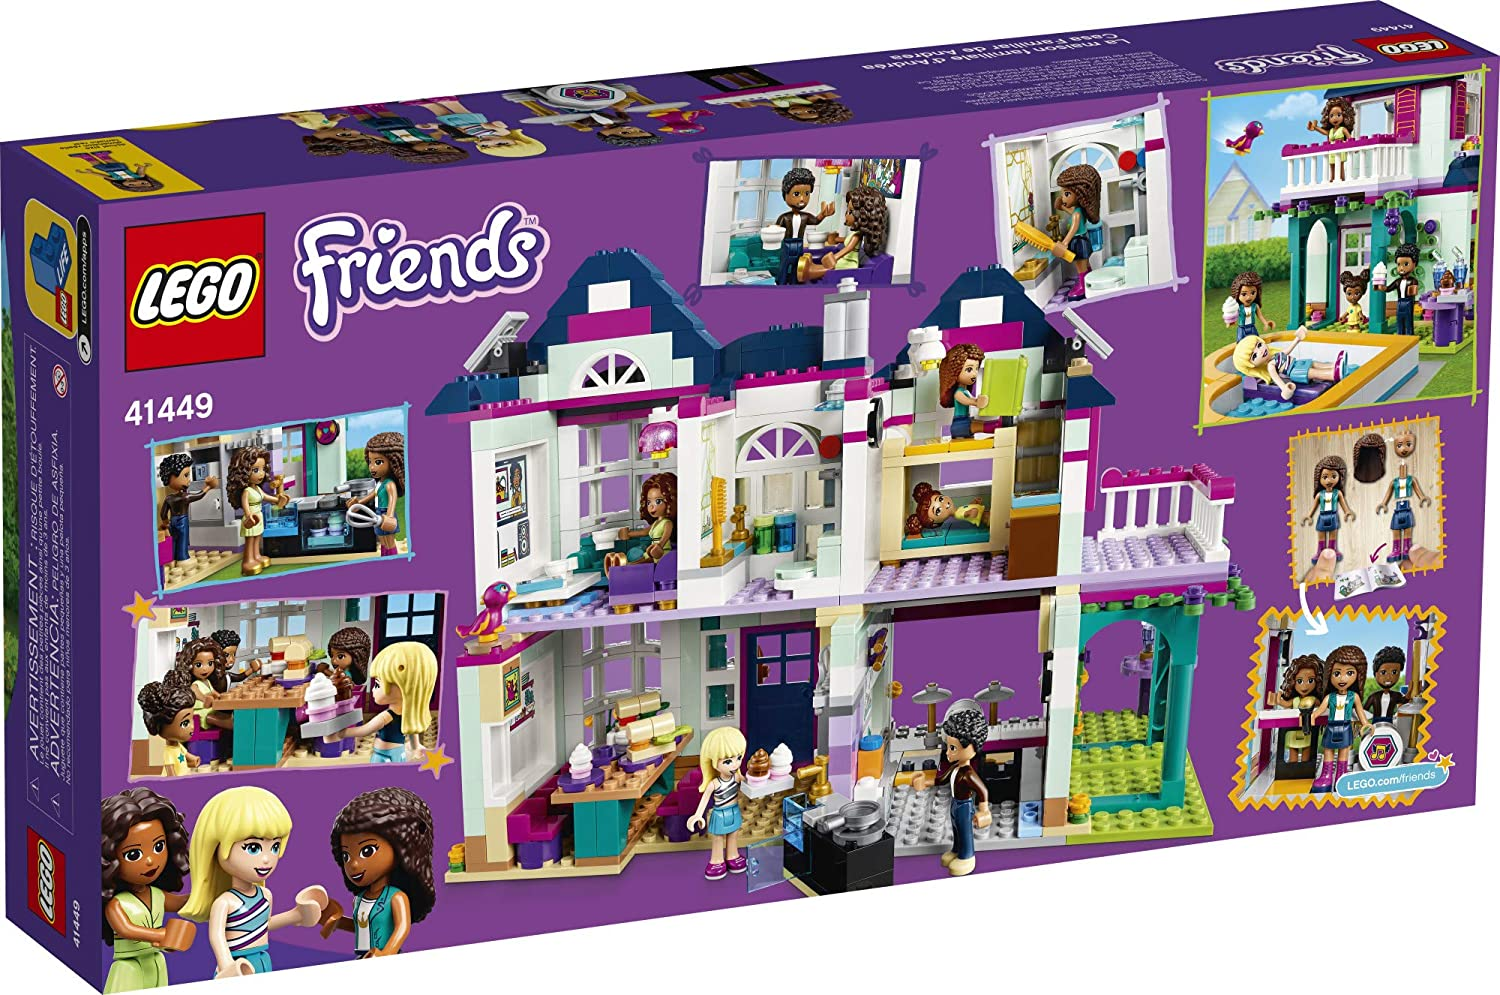 802 Pieces LEGO Friends Andreas Family House 41449 Building Kit; Mini-Doll Playset is Great Gift for Creative 6-Year-Old Kids New 2021